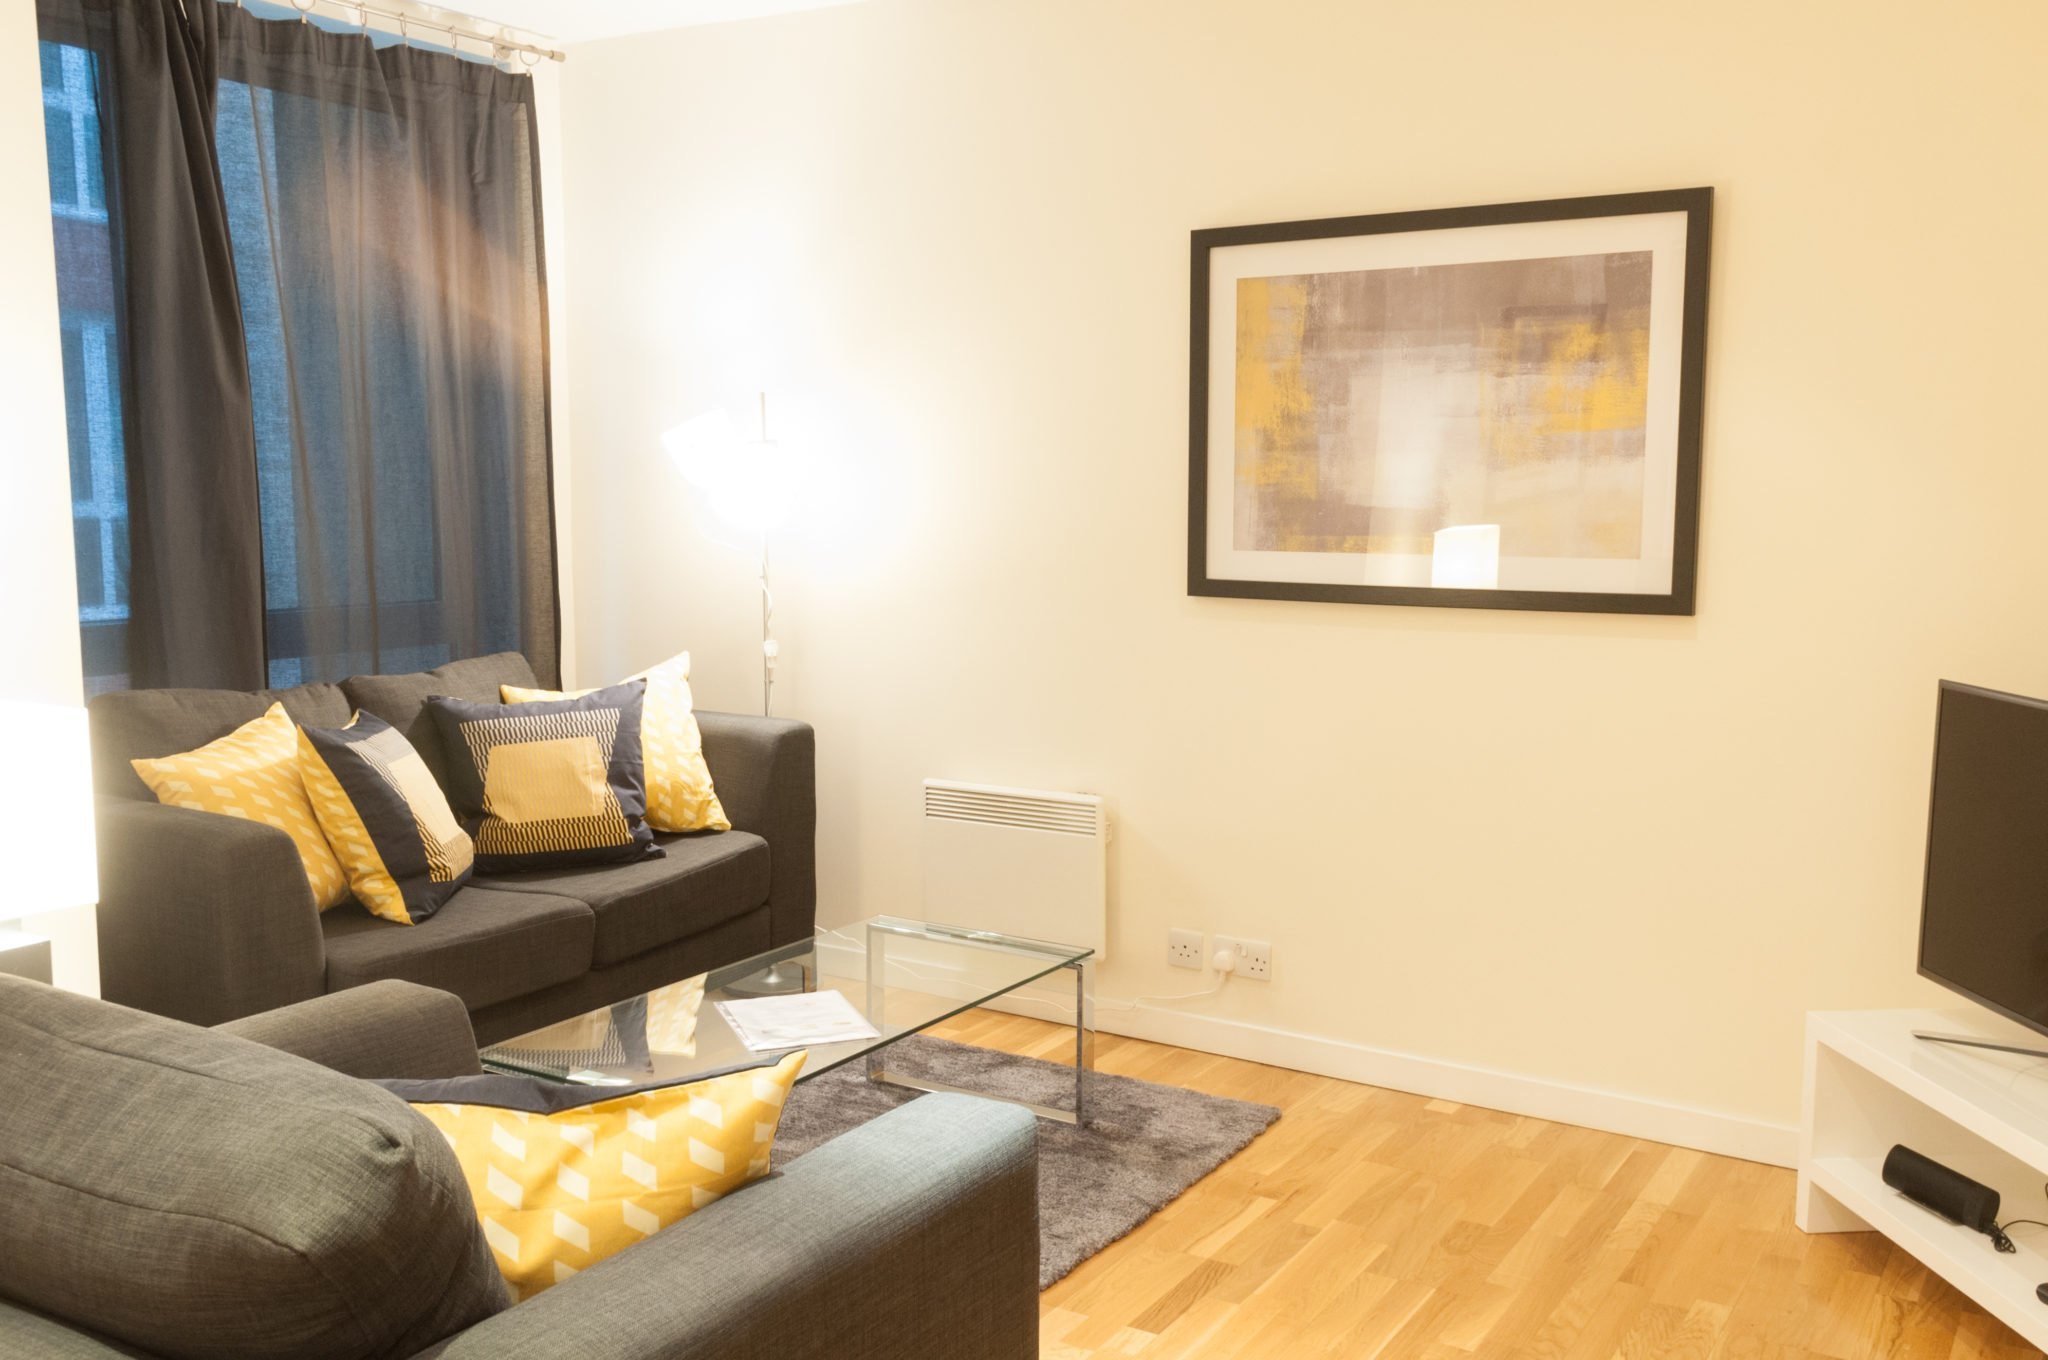 Short-Let-Accommodation-London-City-| Serviced-Apartments-at-St-Pauls,-Barbican,-Chancery-Lane,-Farringdon-|-Holiday-Accommodation-UK|-BEST-RATES---BOOK-NOW---Urban-Stay